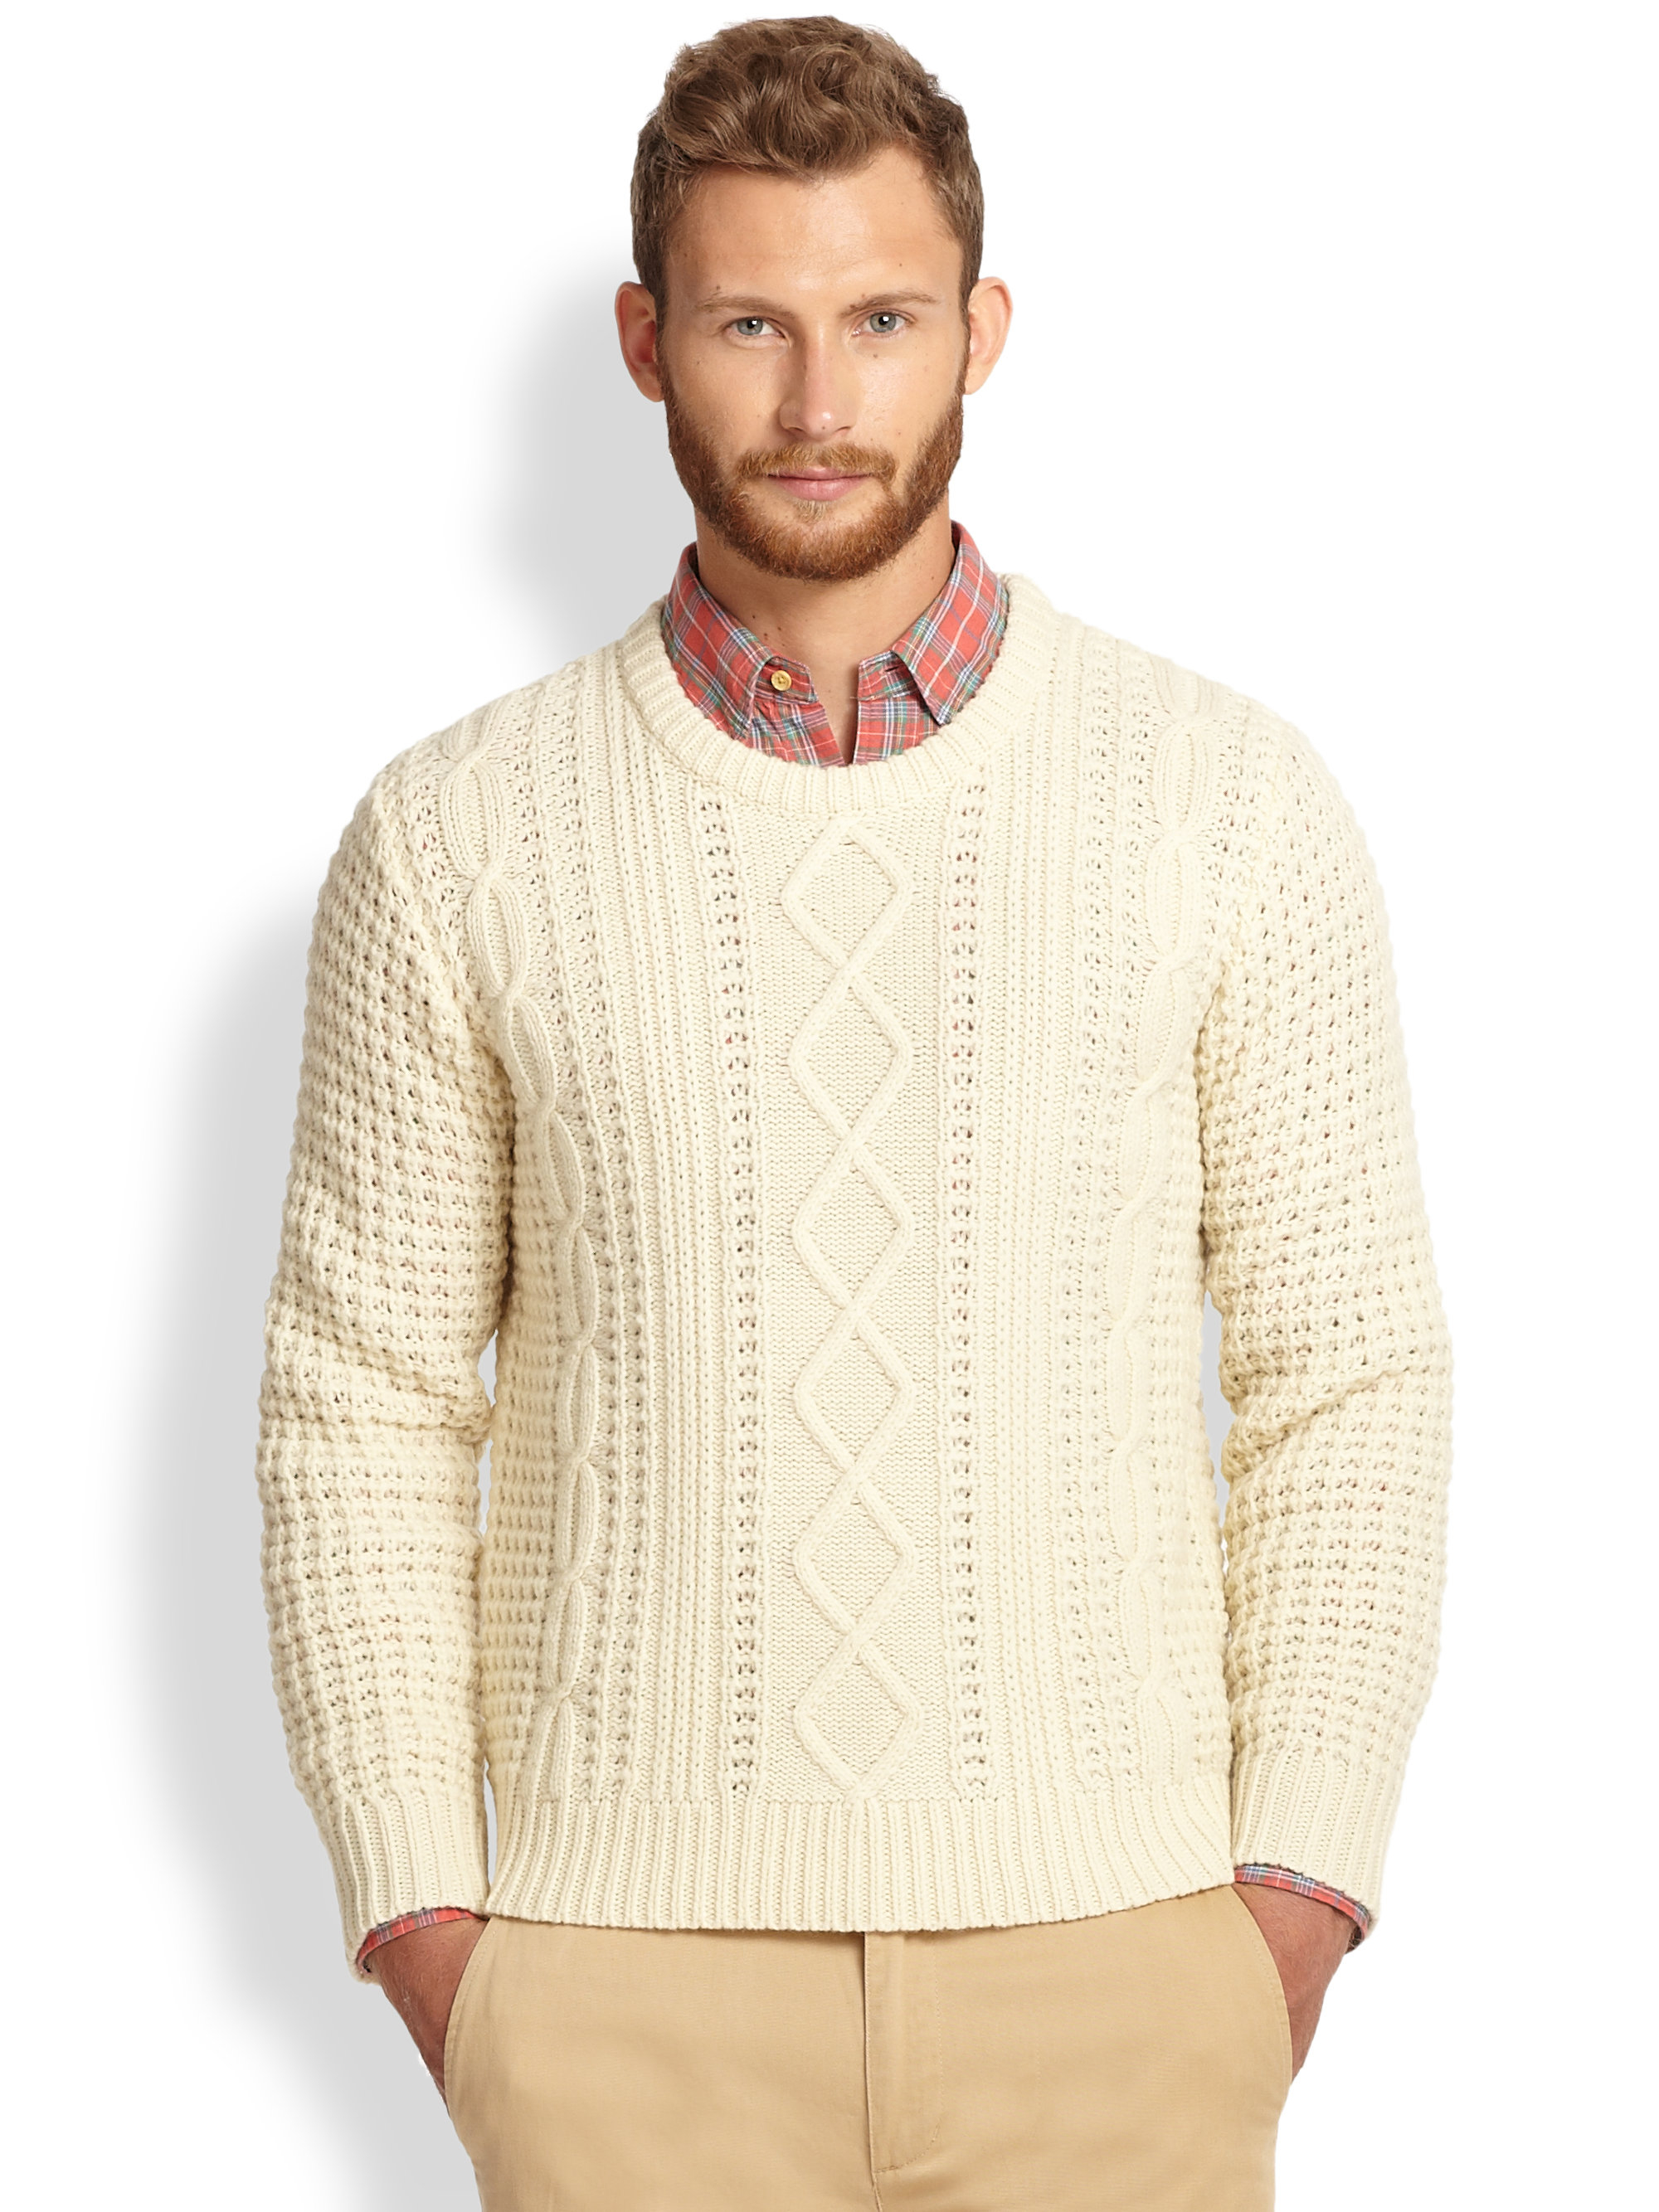 Lyst Gant Rugger Lambswool Cable Knit Sweater In White For Men